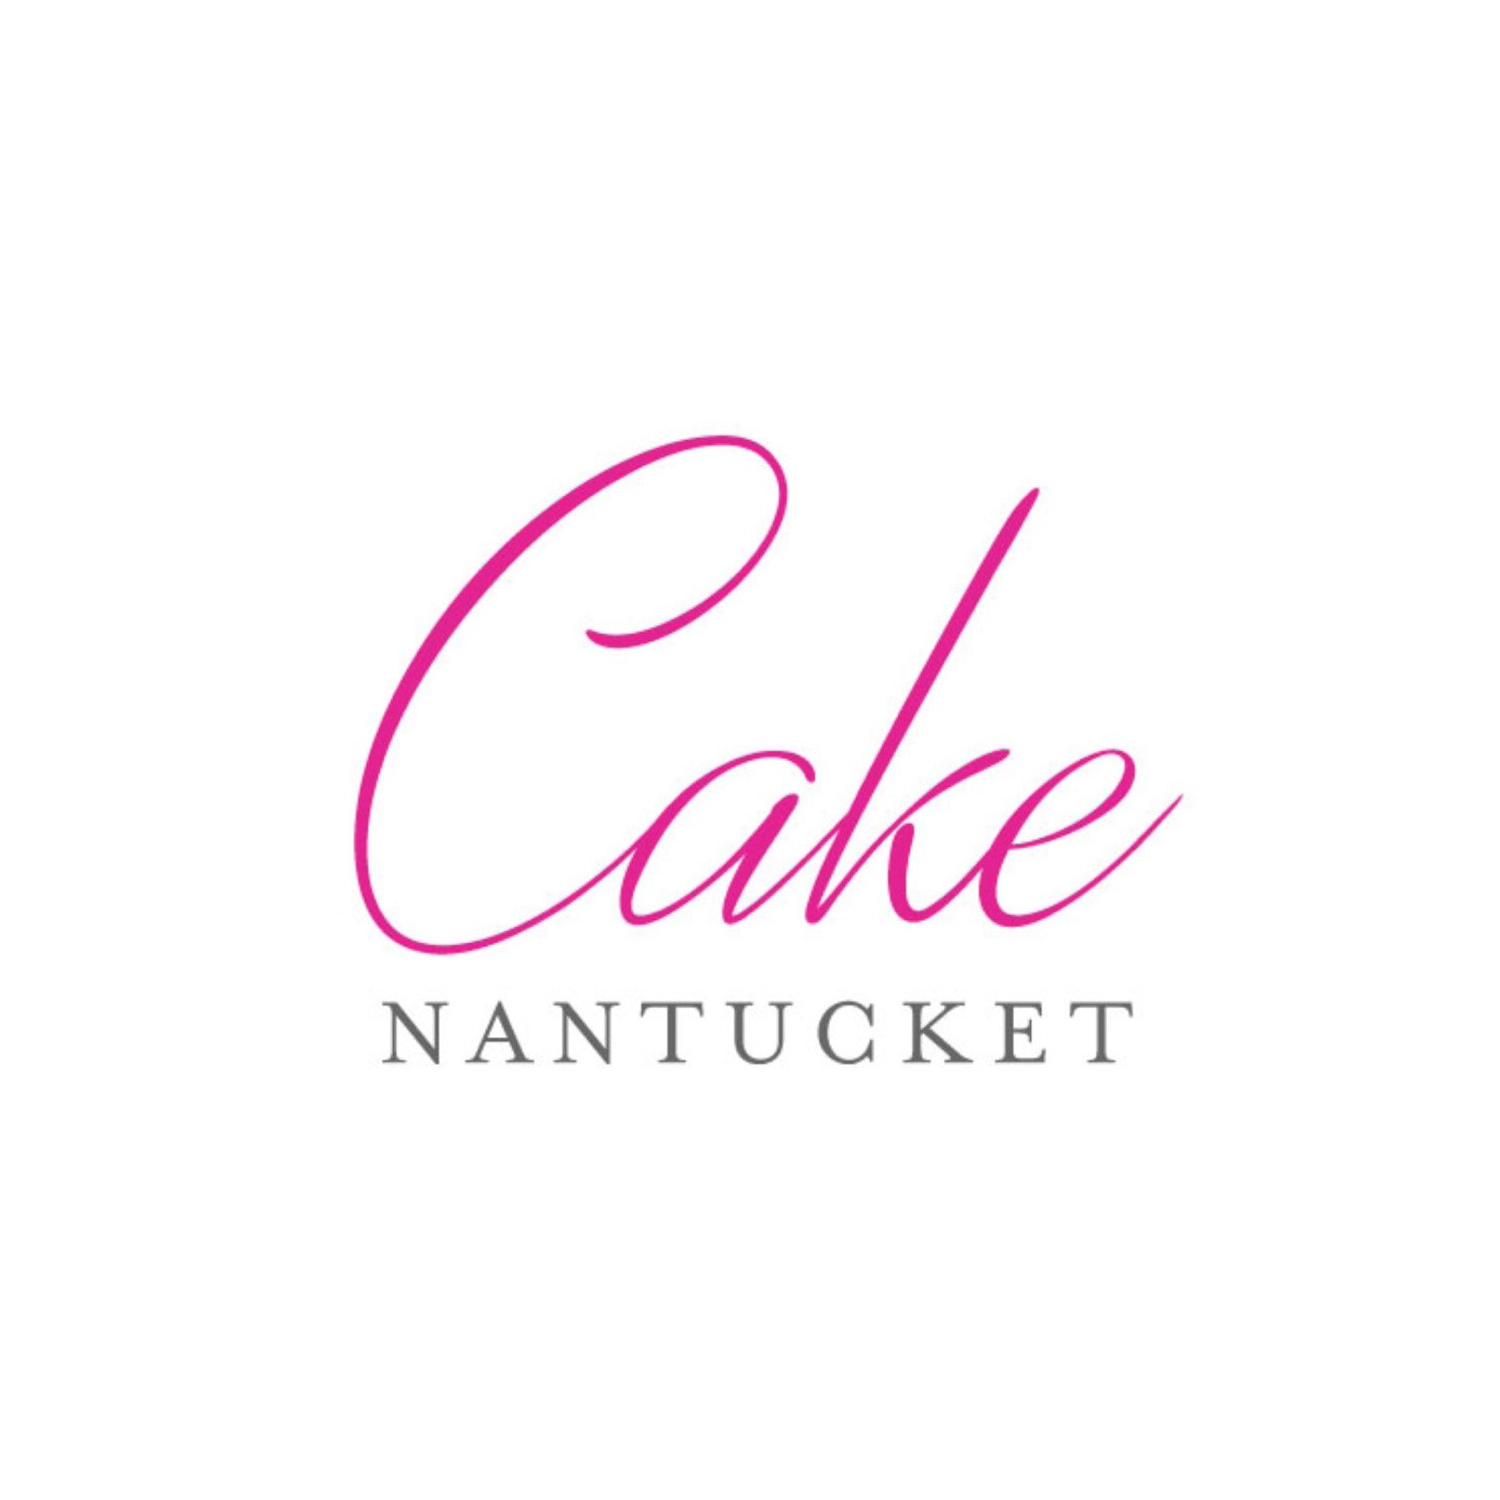 Cake Nantucket